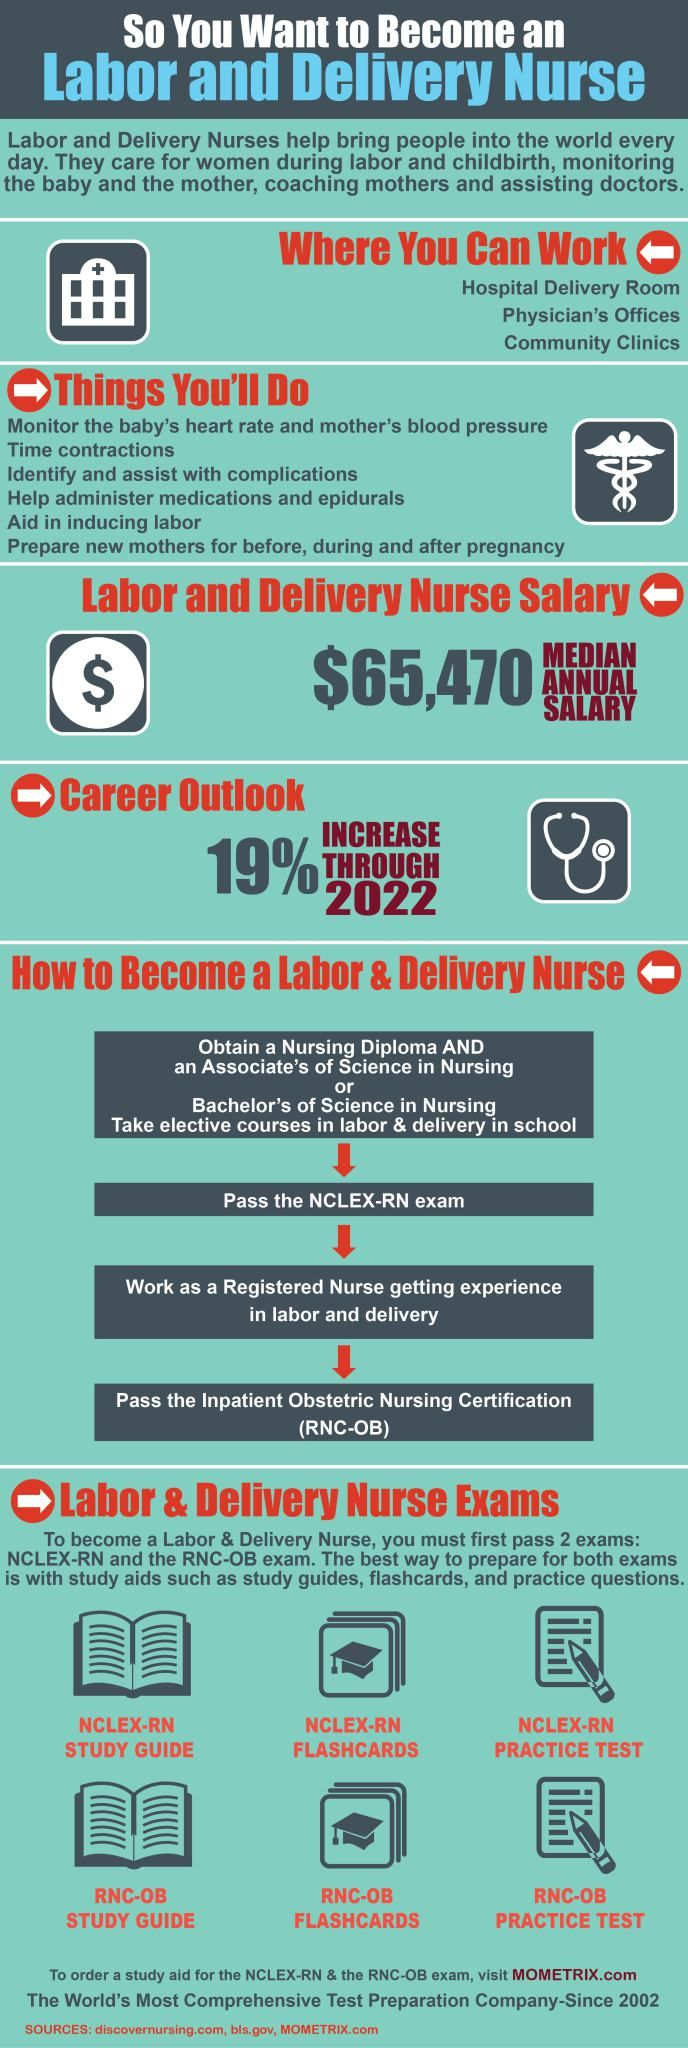 Labor and Delivery Nurse